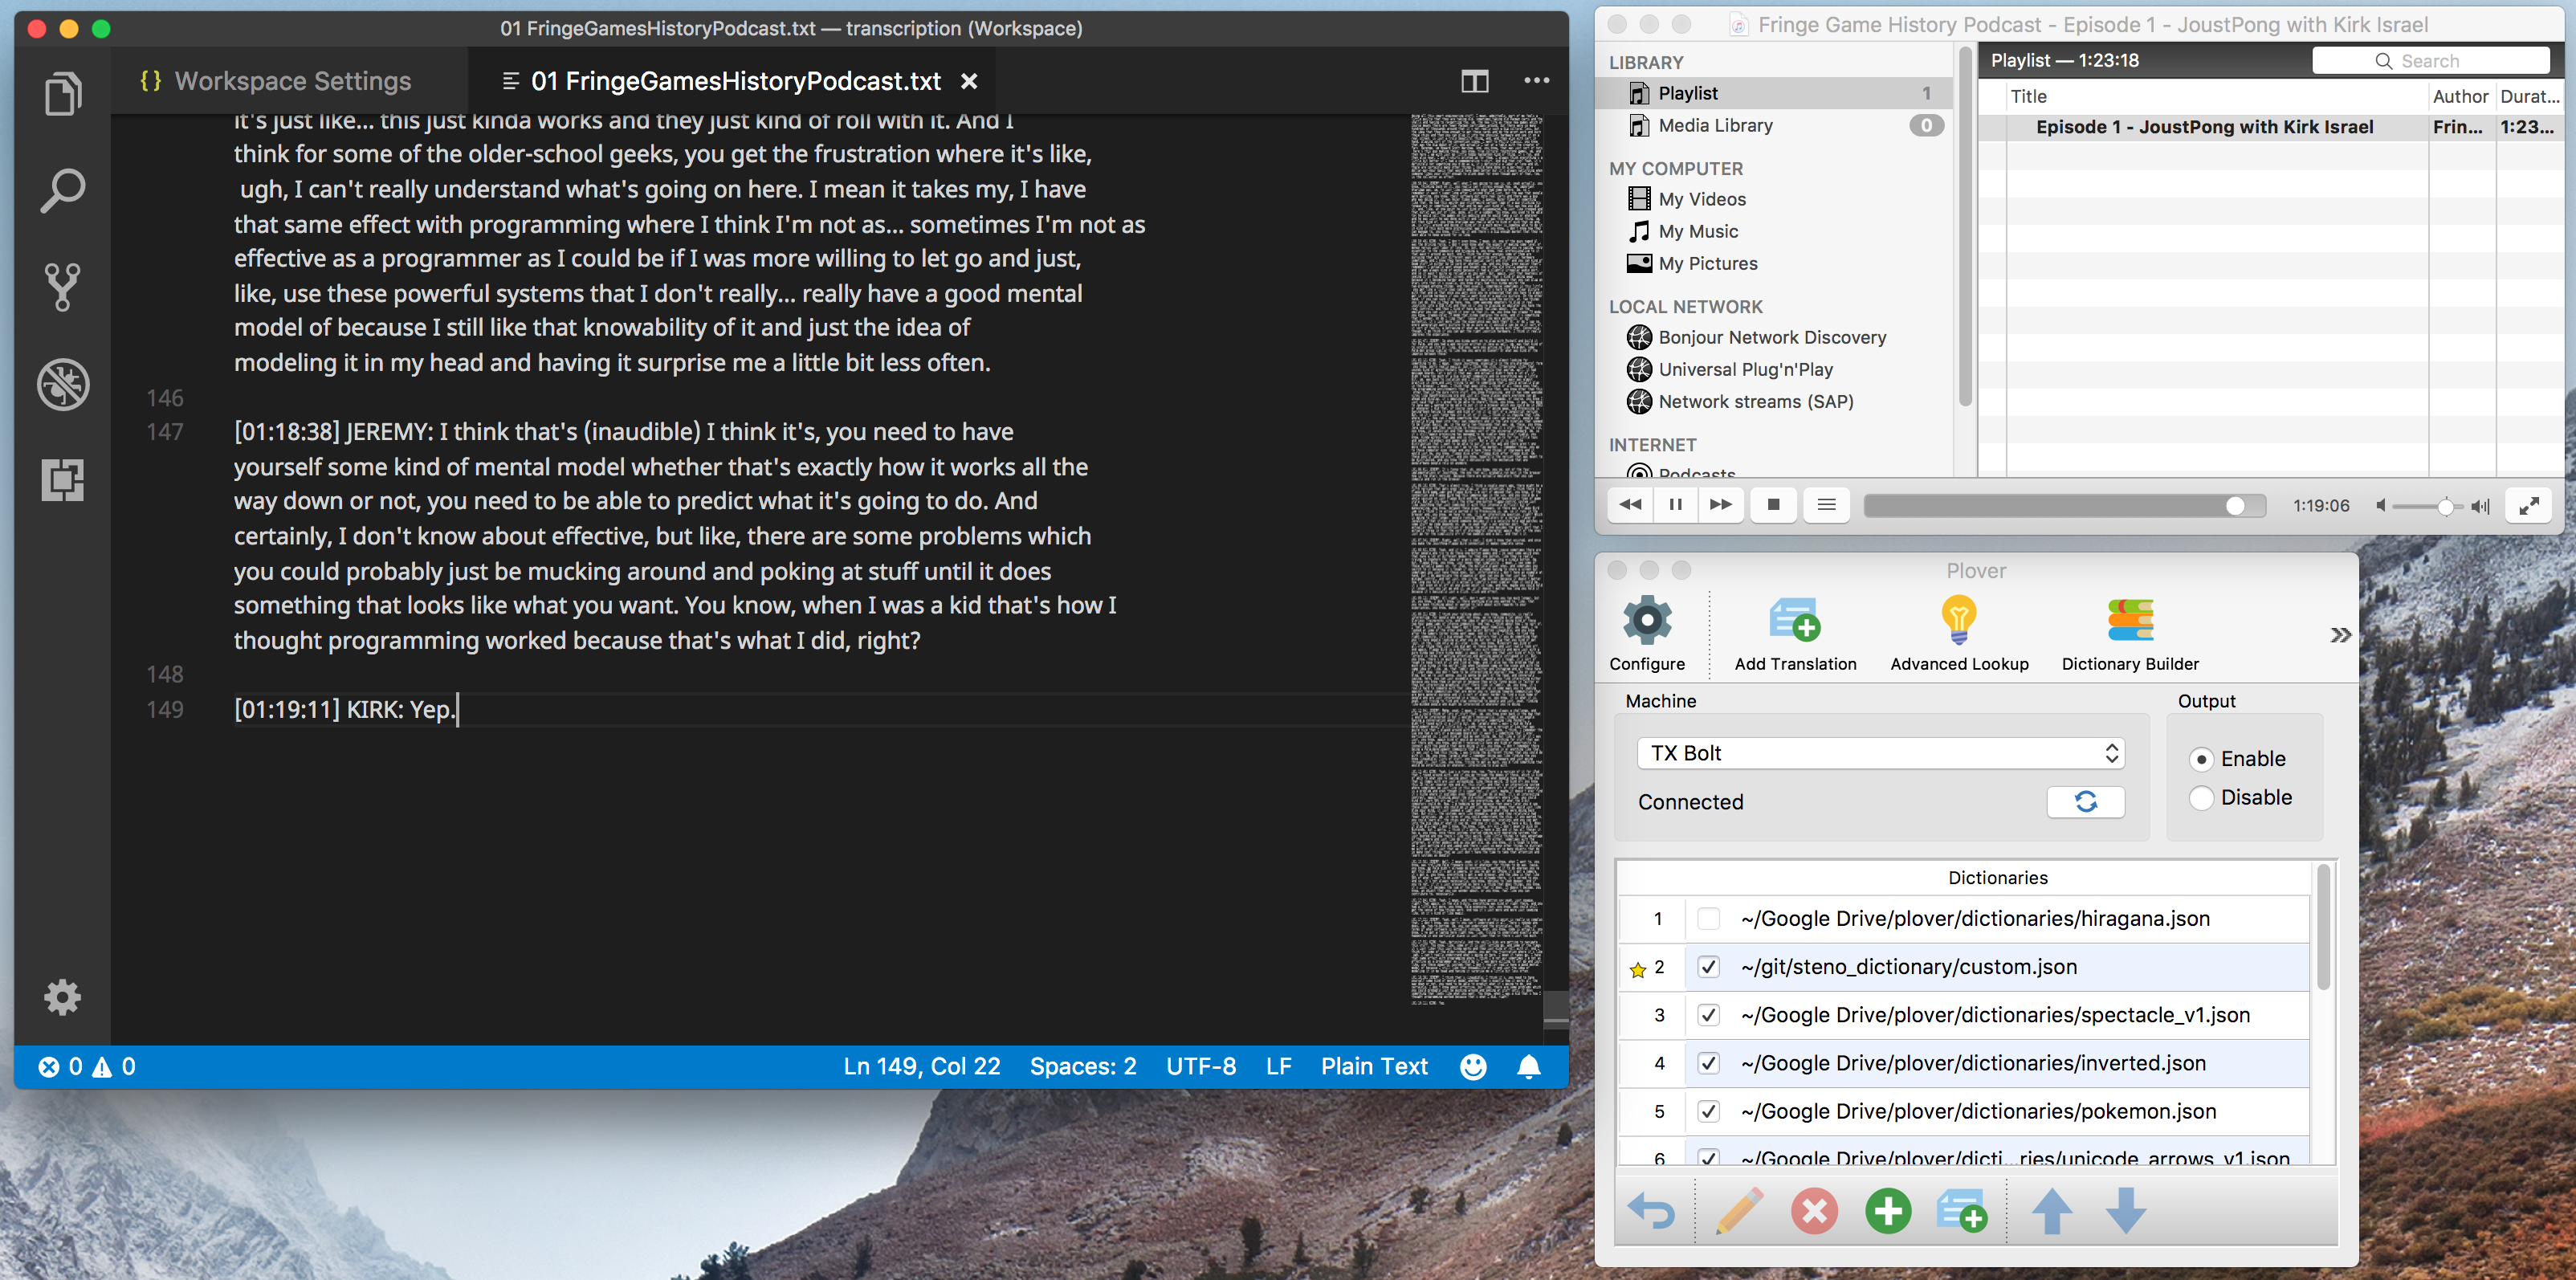 Screenshot of VSCode with an in-progress transcript, Plover in the enabled state, and VLC playing a podcast